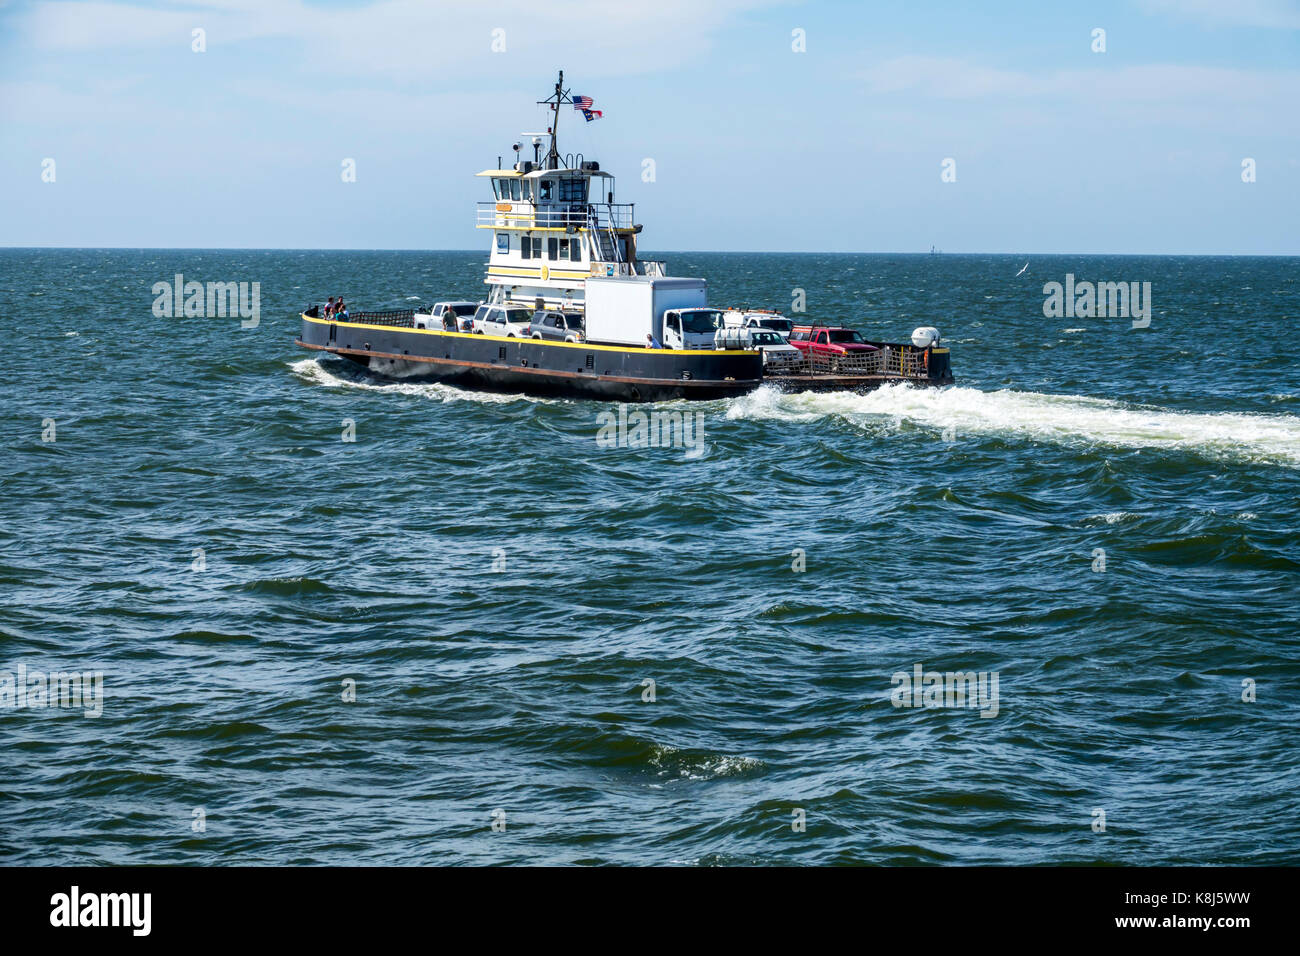 Outer Banks North Carolina NC Pamlico Sound Ocracoke Island Hatteras ferry water navigating vehicles waves - Stock Image